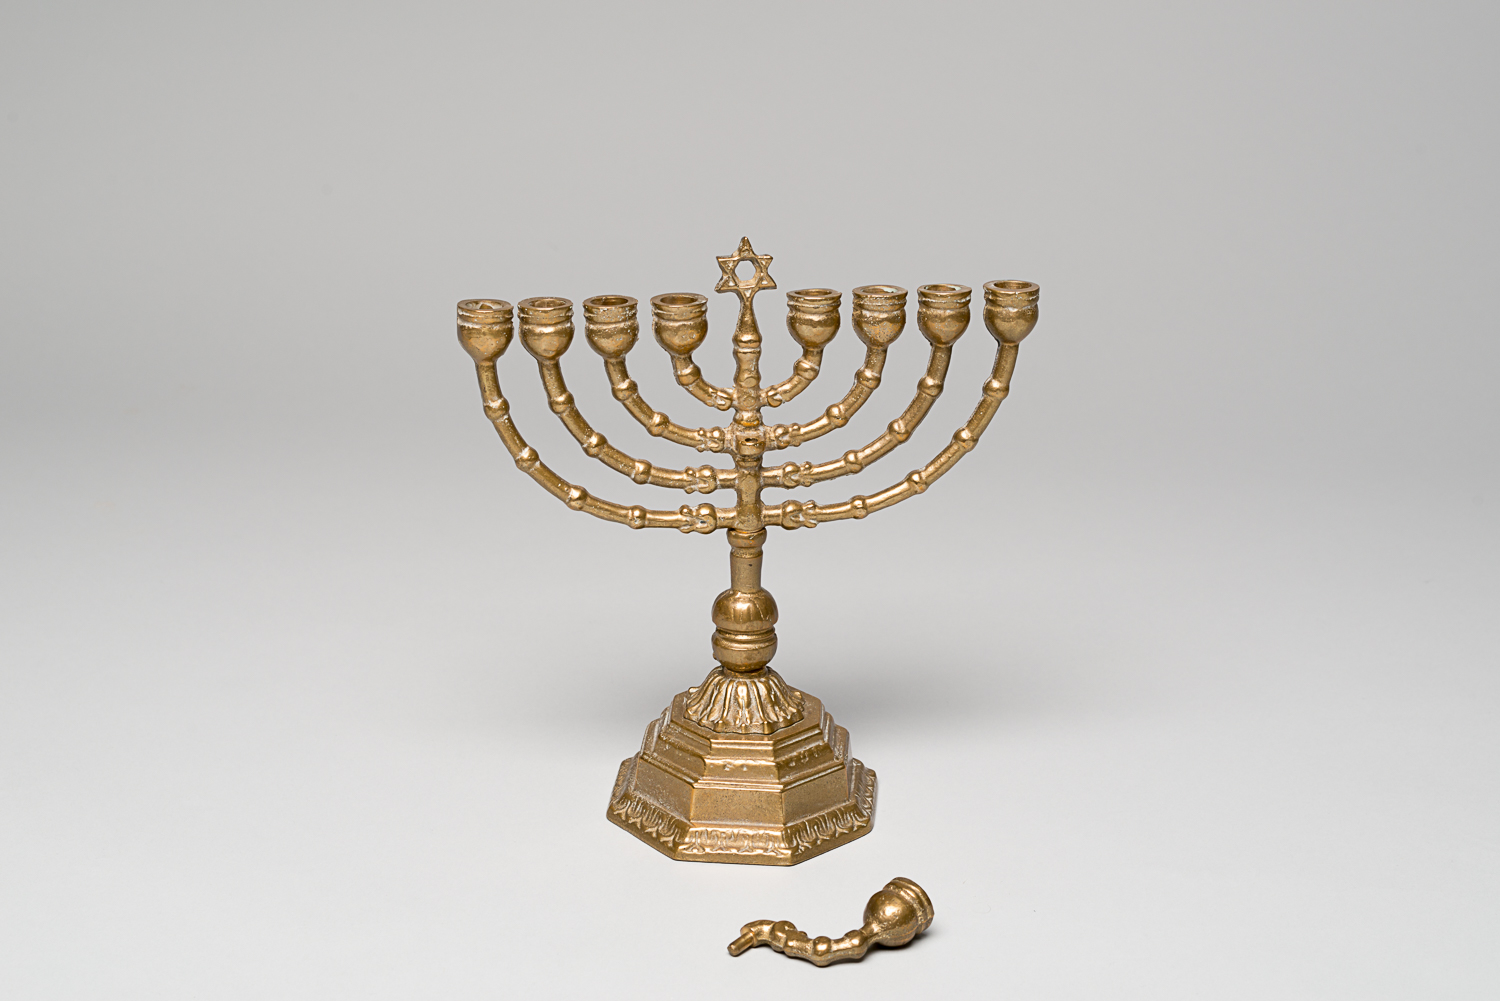 This Hanukkah lamp (or Hanukiah) is a significant object in Jewish tradition. Its eight candles commemorate the miracle of the Second Holy Temple in Jerusalem. (Photo: Peter Berra)